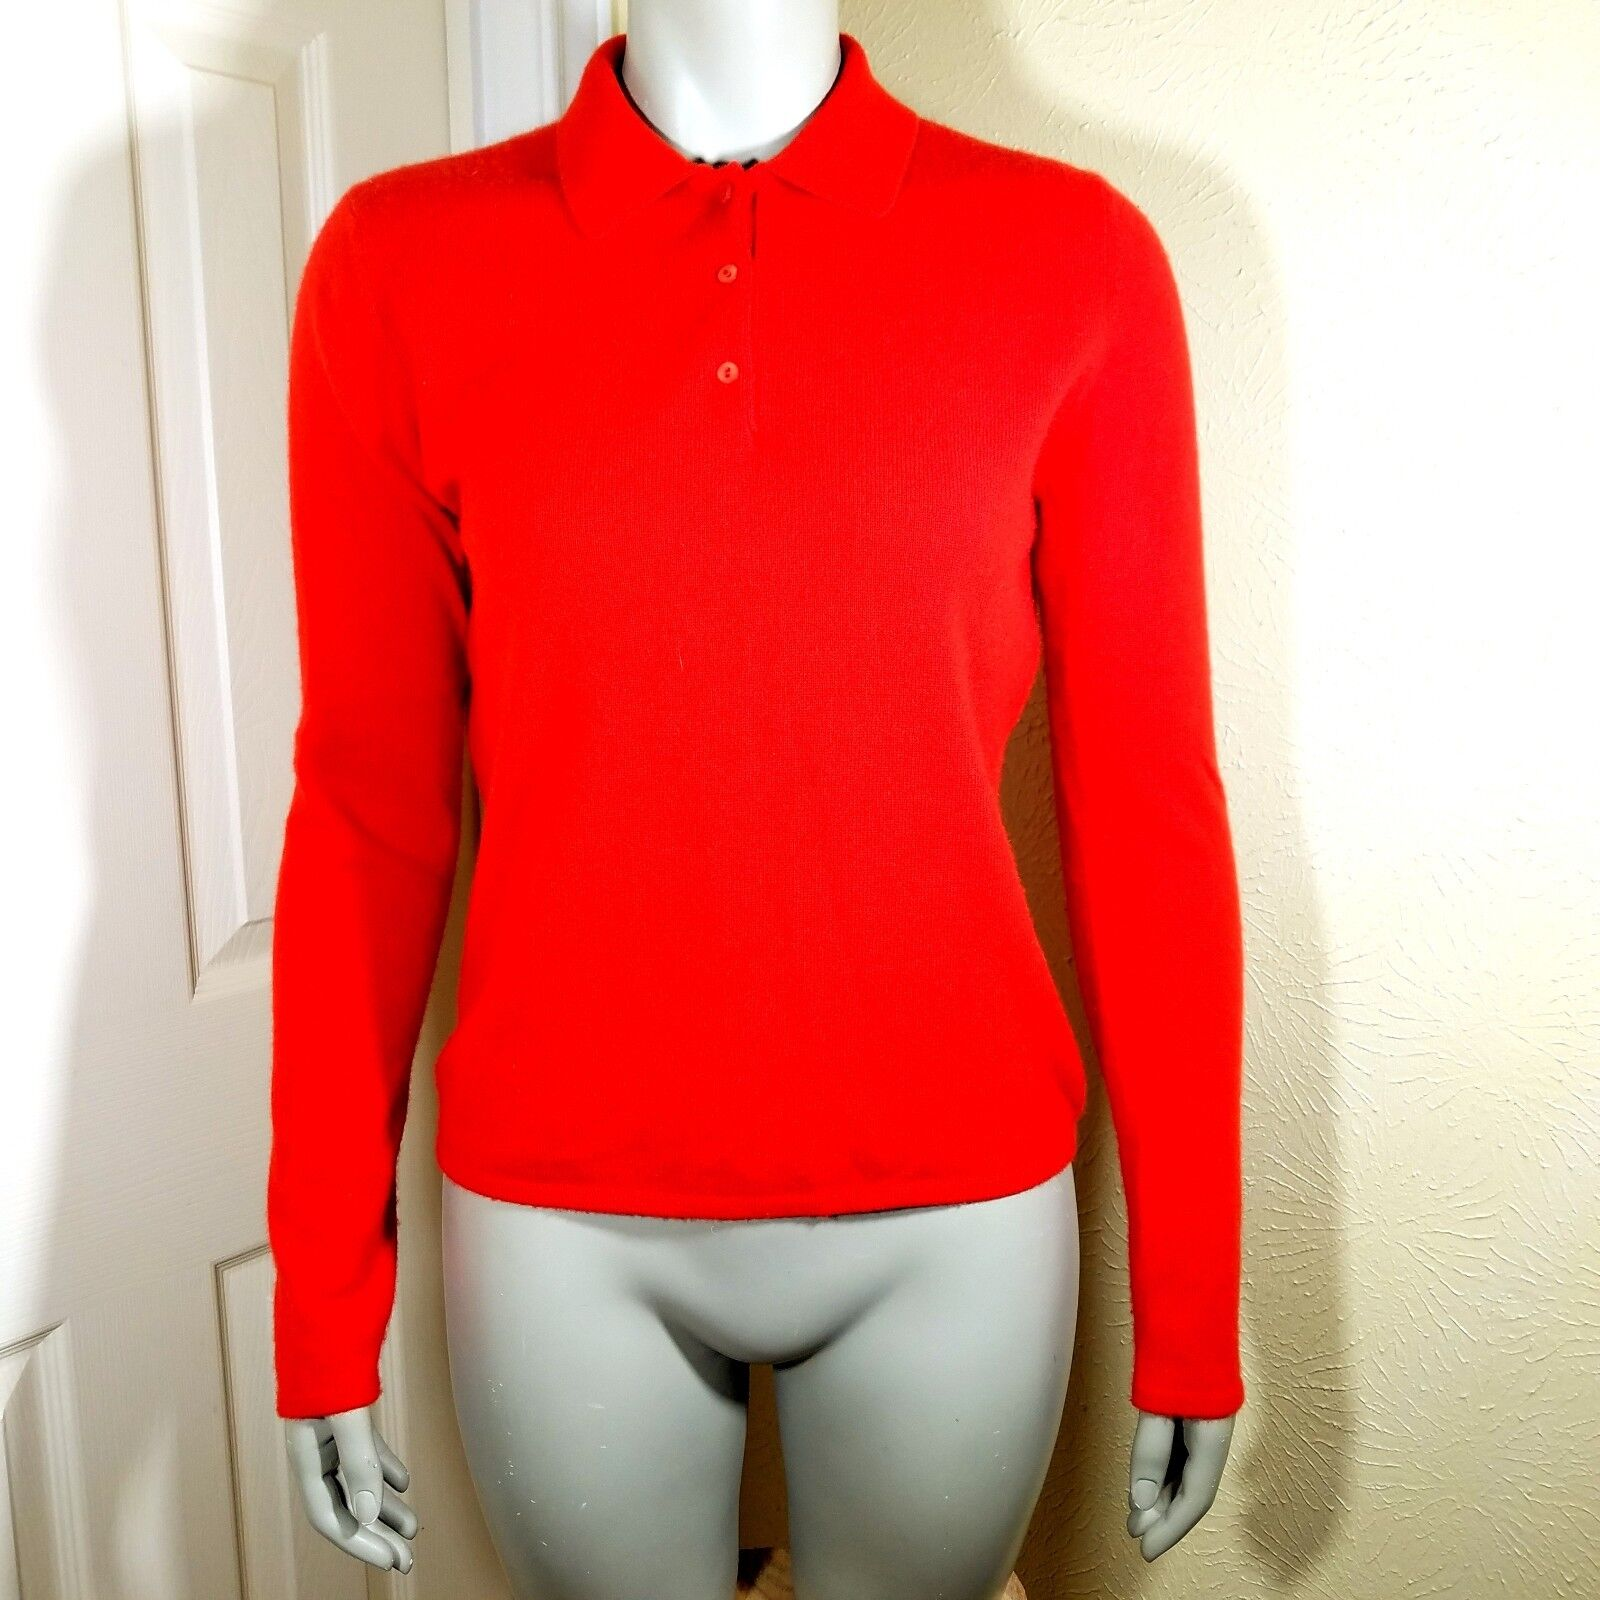 Saks Fifth Avenue Women's M Red 100% Cashmere Knit Sweater Christmas Career